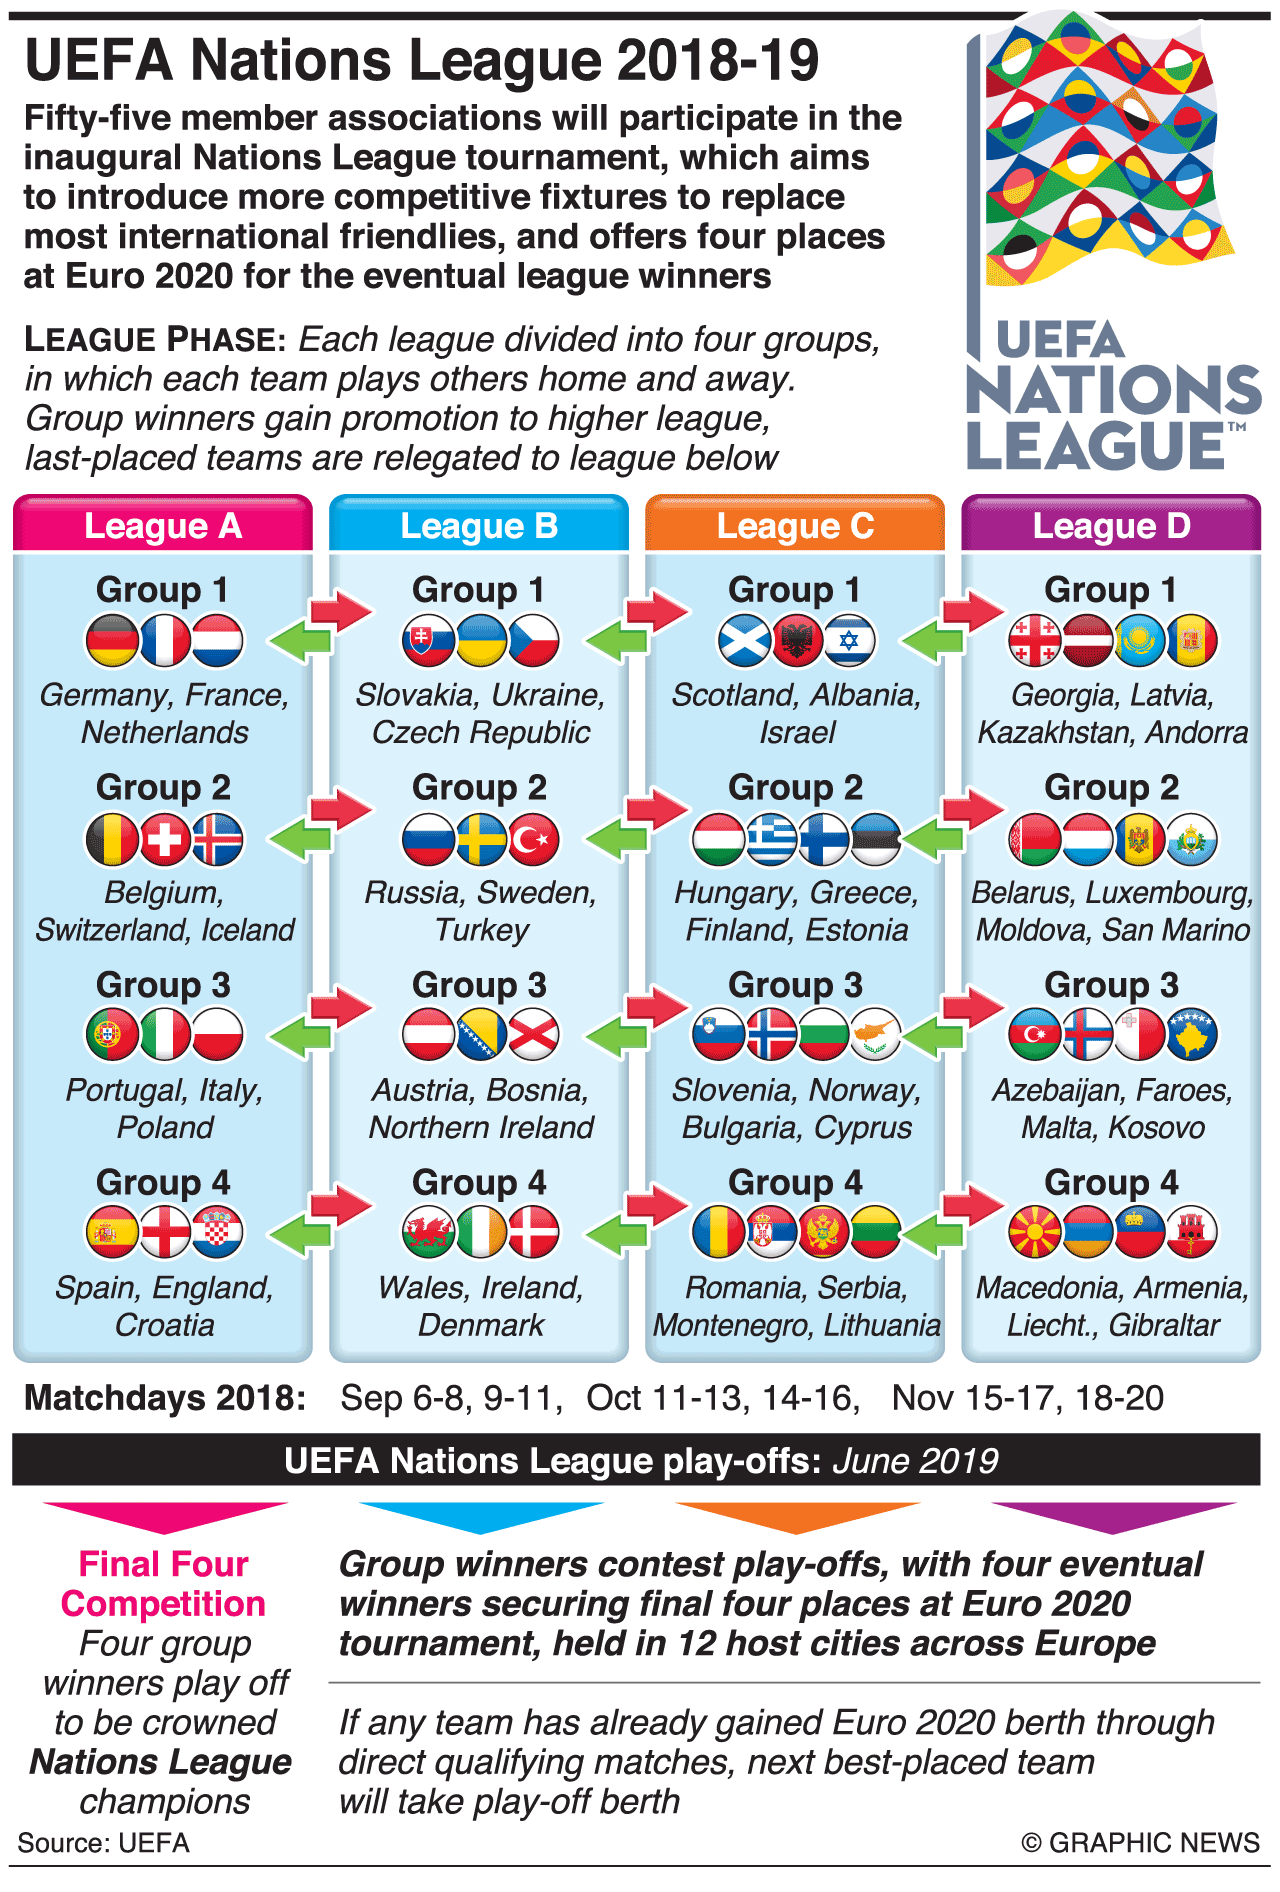 Futbol Liga Chempionov Uefa 2018 19 Infografika League National Infographic